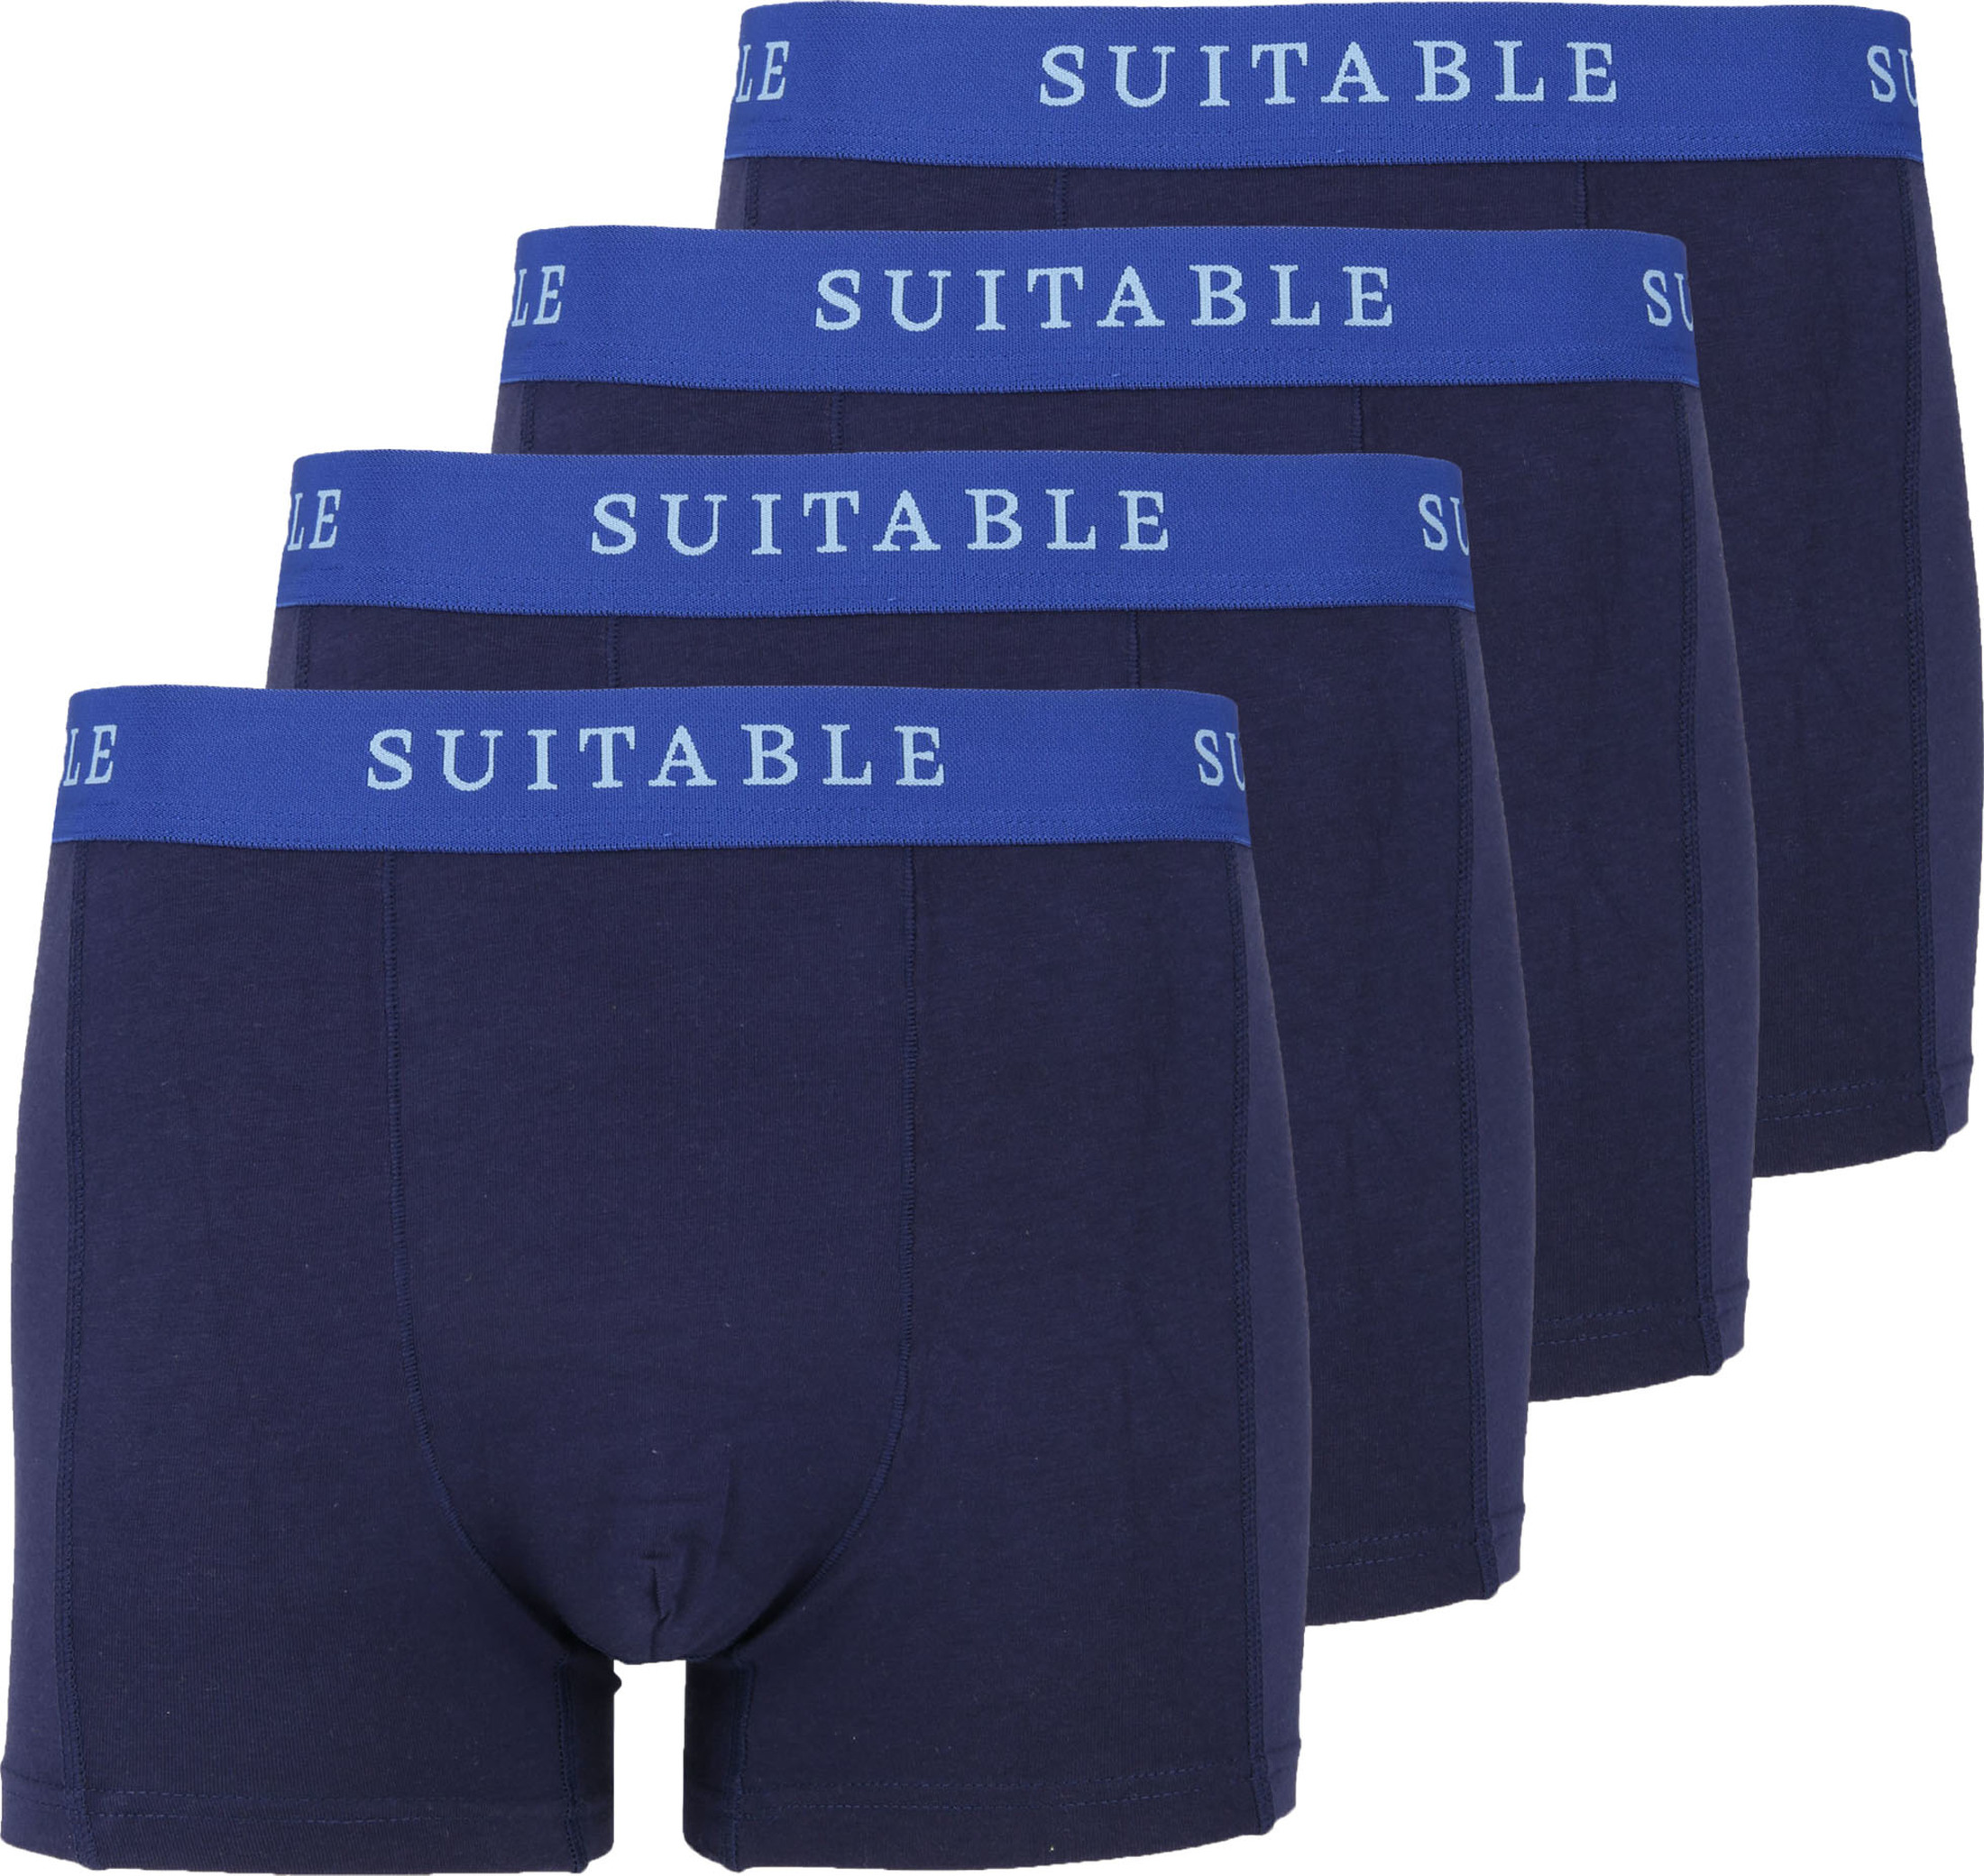 Suitable Bamboo Boxershorts 4-Pack Navy